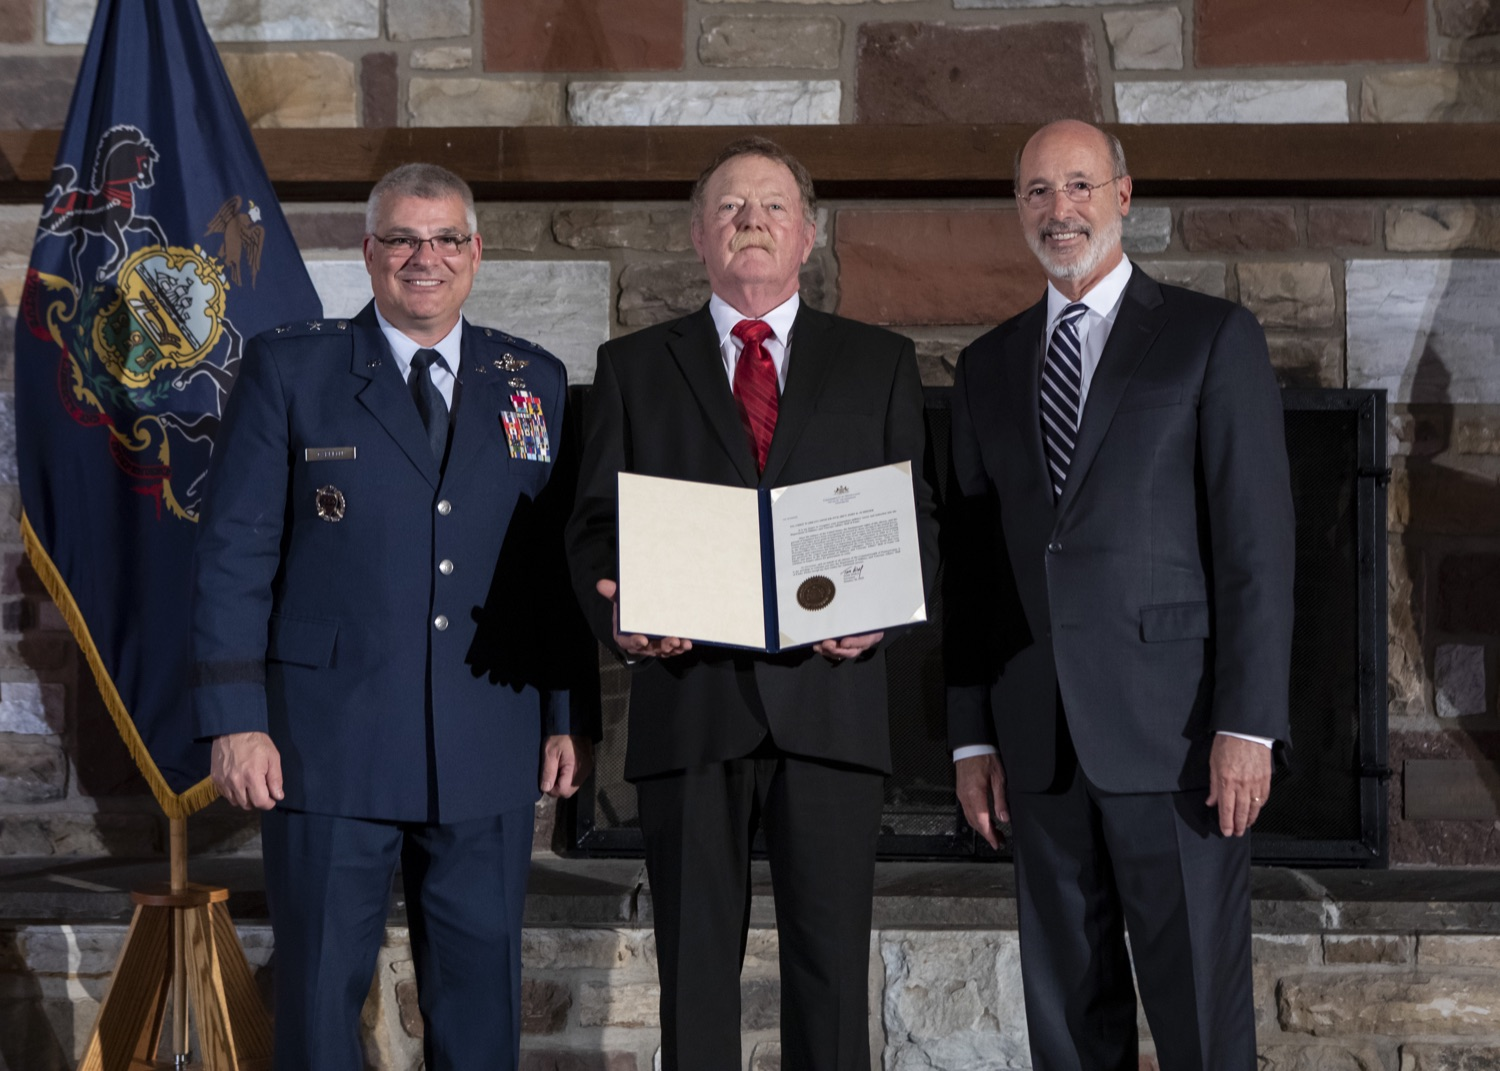 """<a href=""""https://filesource.wostreaming.net/commonwealthofpa/photo/17557_gov_dmva_rjw_014.jpg"""" target=""""_blank"""">⇣Download Photo<br></a>Governor Tom Wolf helped to honor two members inducted today into the Pennsylvania Department of Military and Veterans Affairs prestigious Hall of Fame, recognizing their exceptional service to the department that supports Pennsylvanias nearly 800,000 veterans and 18,000 members of the National Guard.  Chief Warrant Officer 5 (ret.) John K. Schreier of Selinsgrove, Snyder County; and John A. Brenner (posthumously) of Mt. Wolf, York County, are the 2019 inductees."""